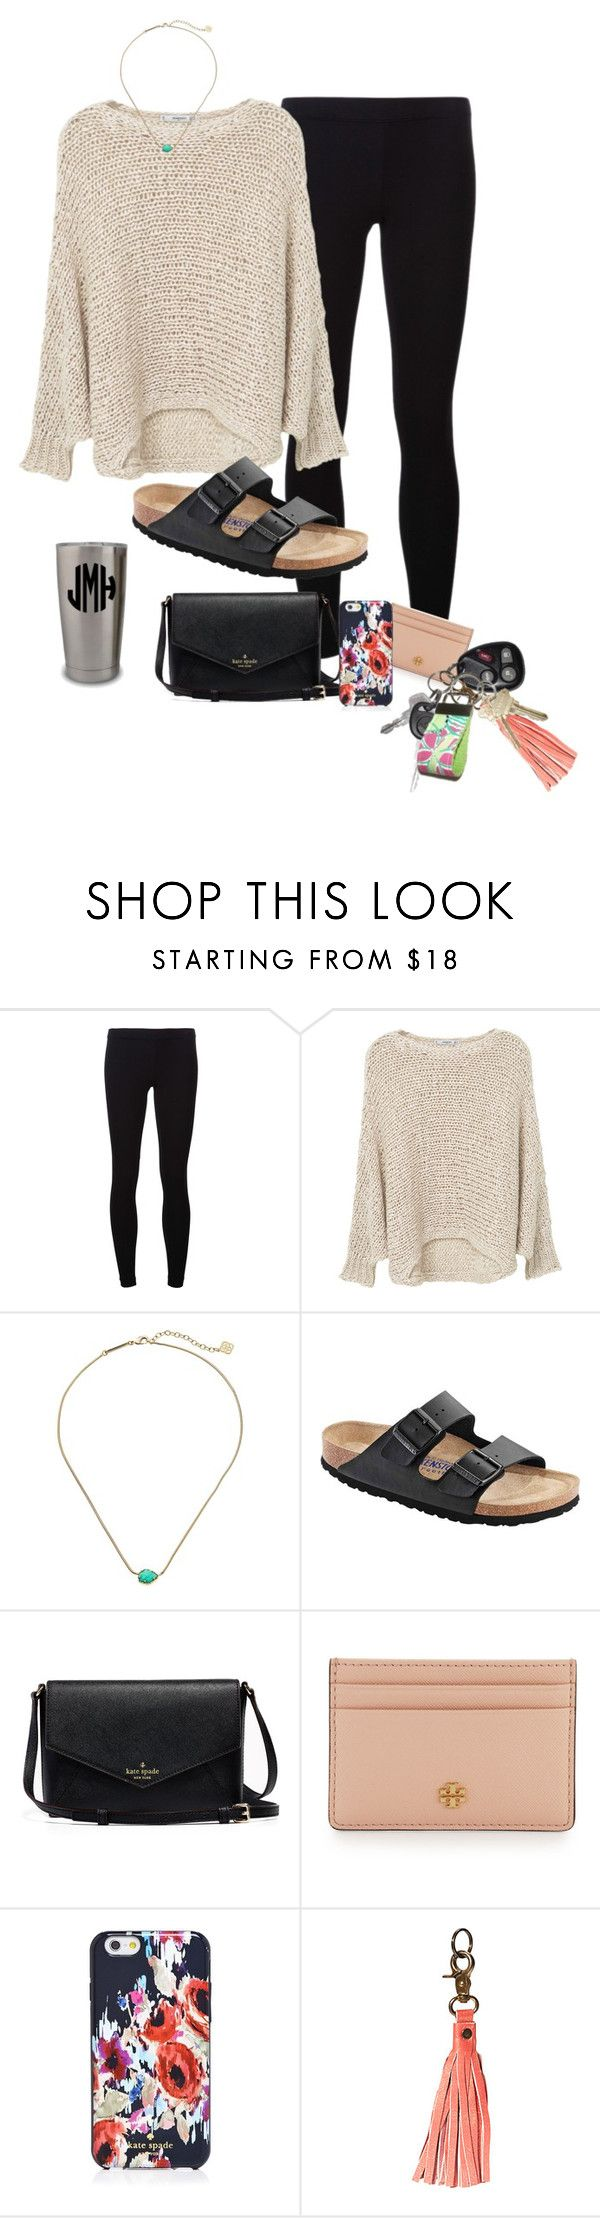 """""""saturday errands"""" by prep-lover1 ❤ liked on Polyvore featuring James Perse, MANGO, Kendra Scott, Birkenstock, Tory Burch, Kate Spade, Anuschka and Lilly Pulitzer"""